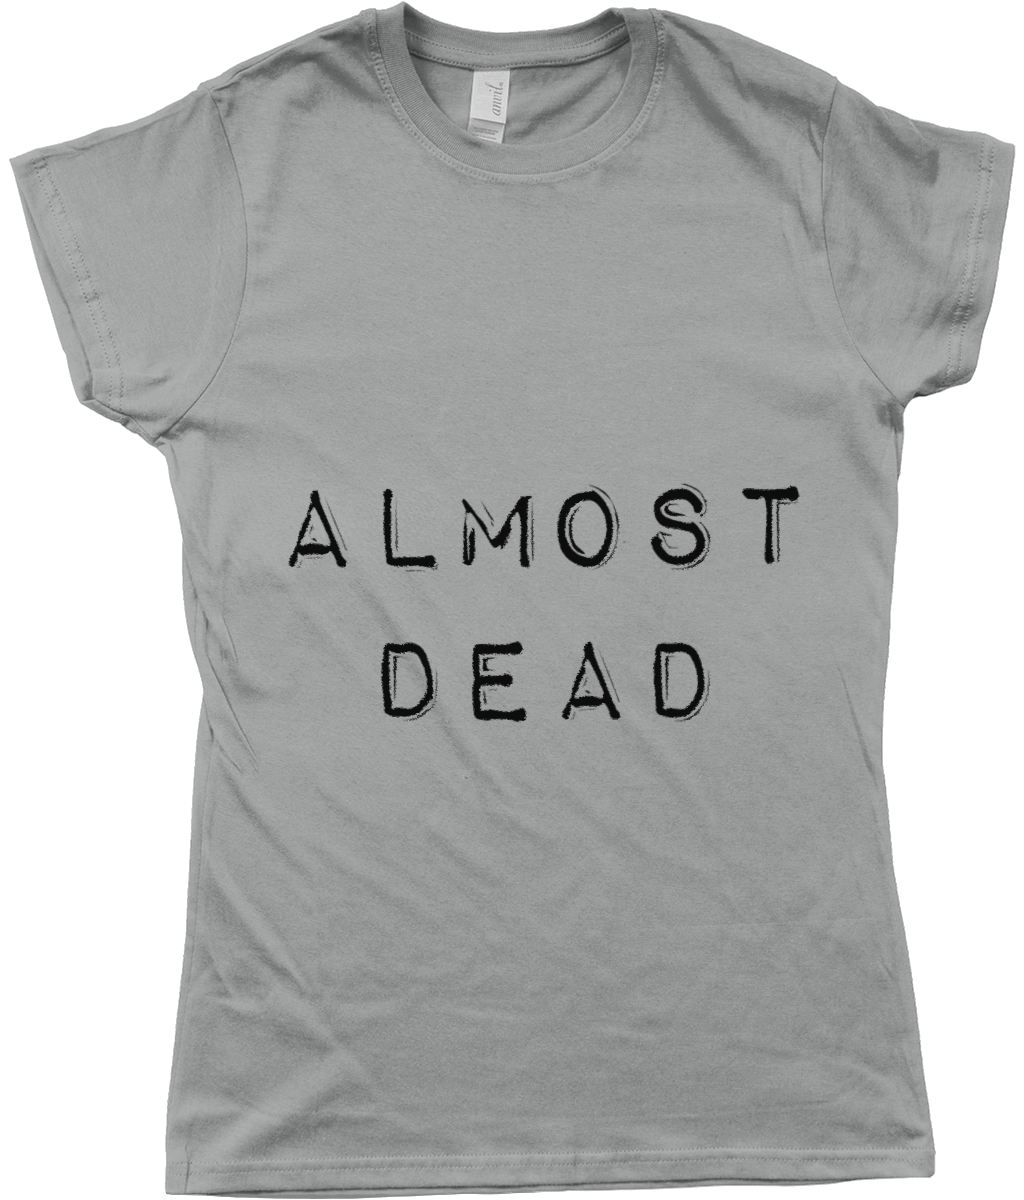 Almost Dead Ladies Fitted T-Shirt